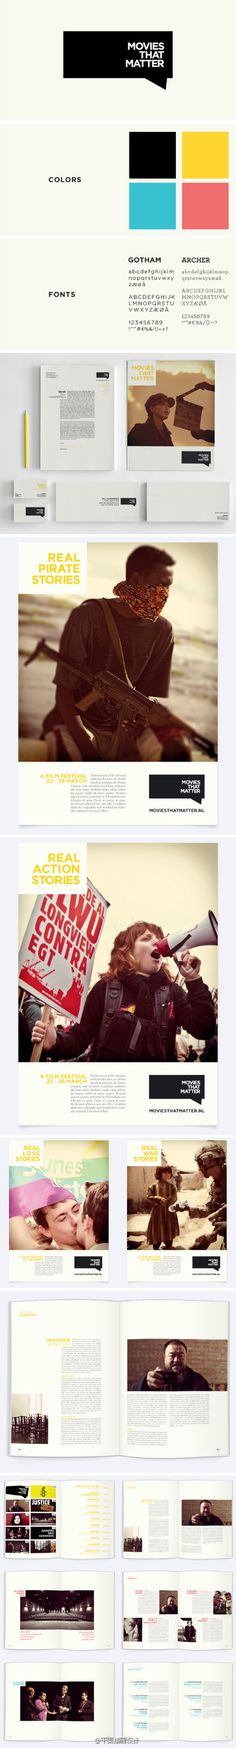 Bachelor Project 2012 —— Movies That Matter —— (by Kasper Andersen)